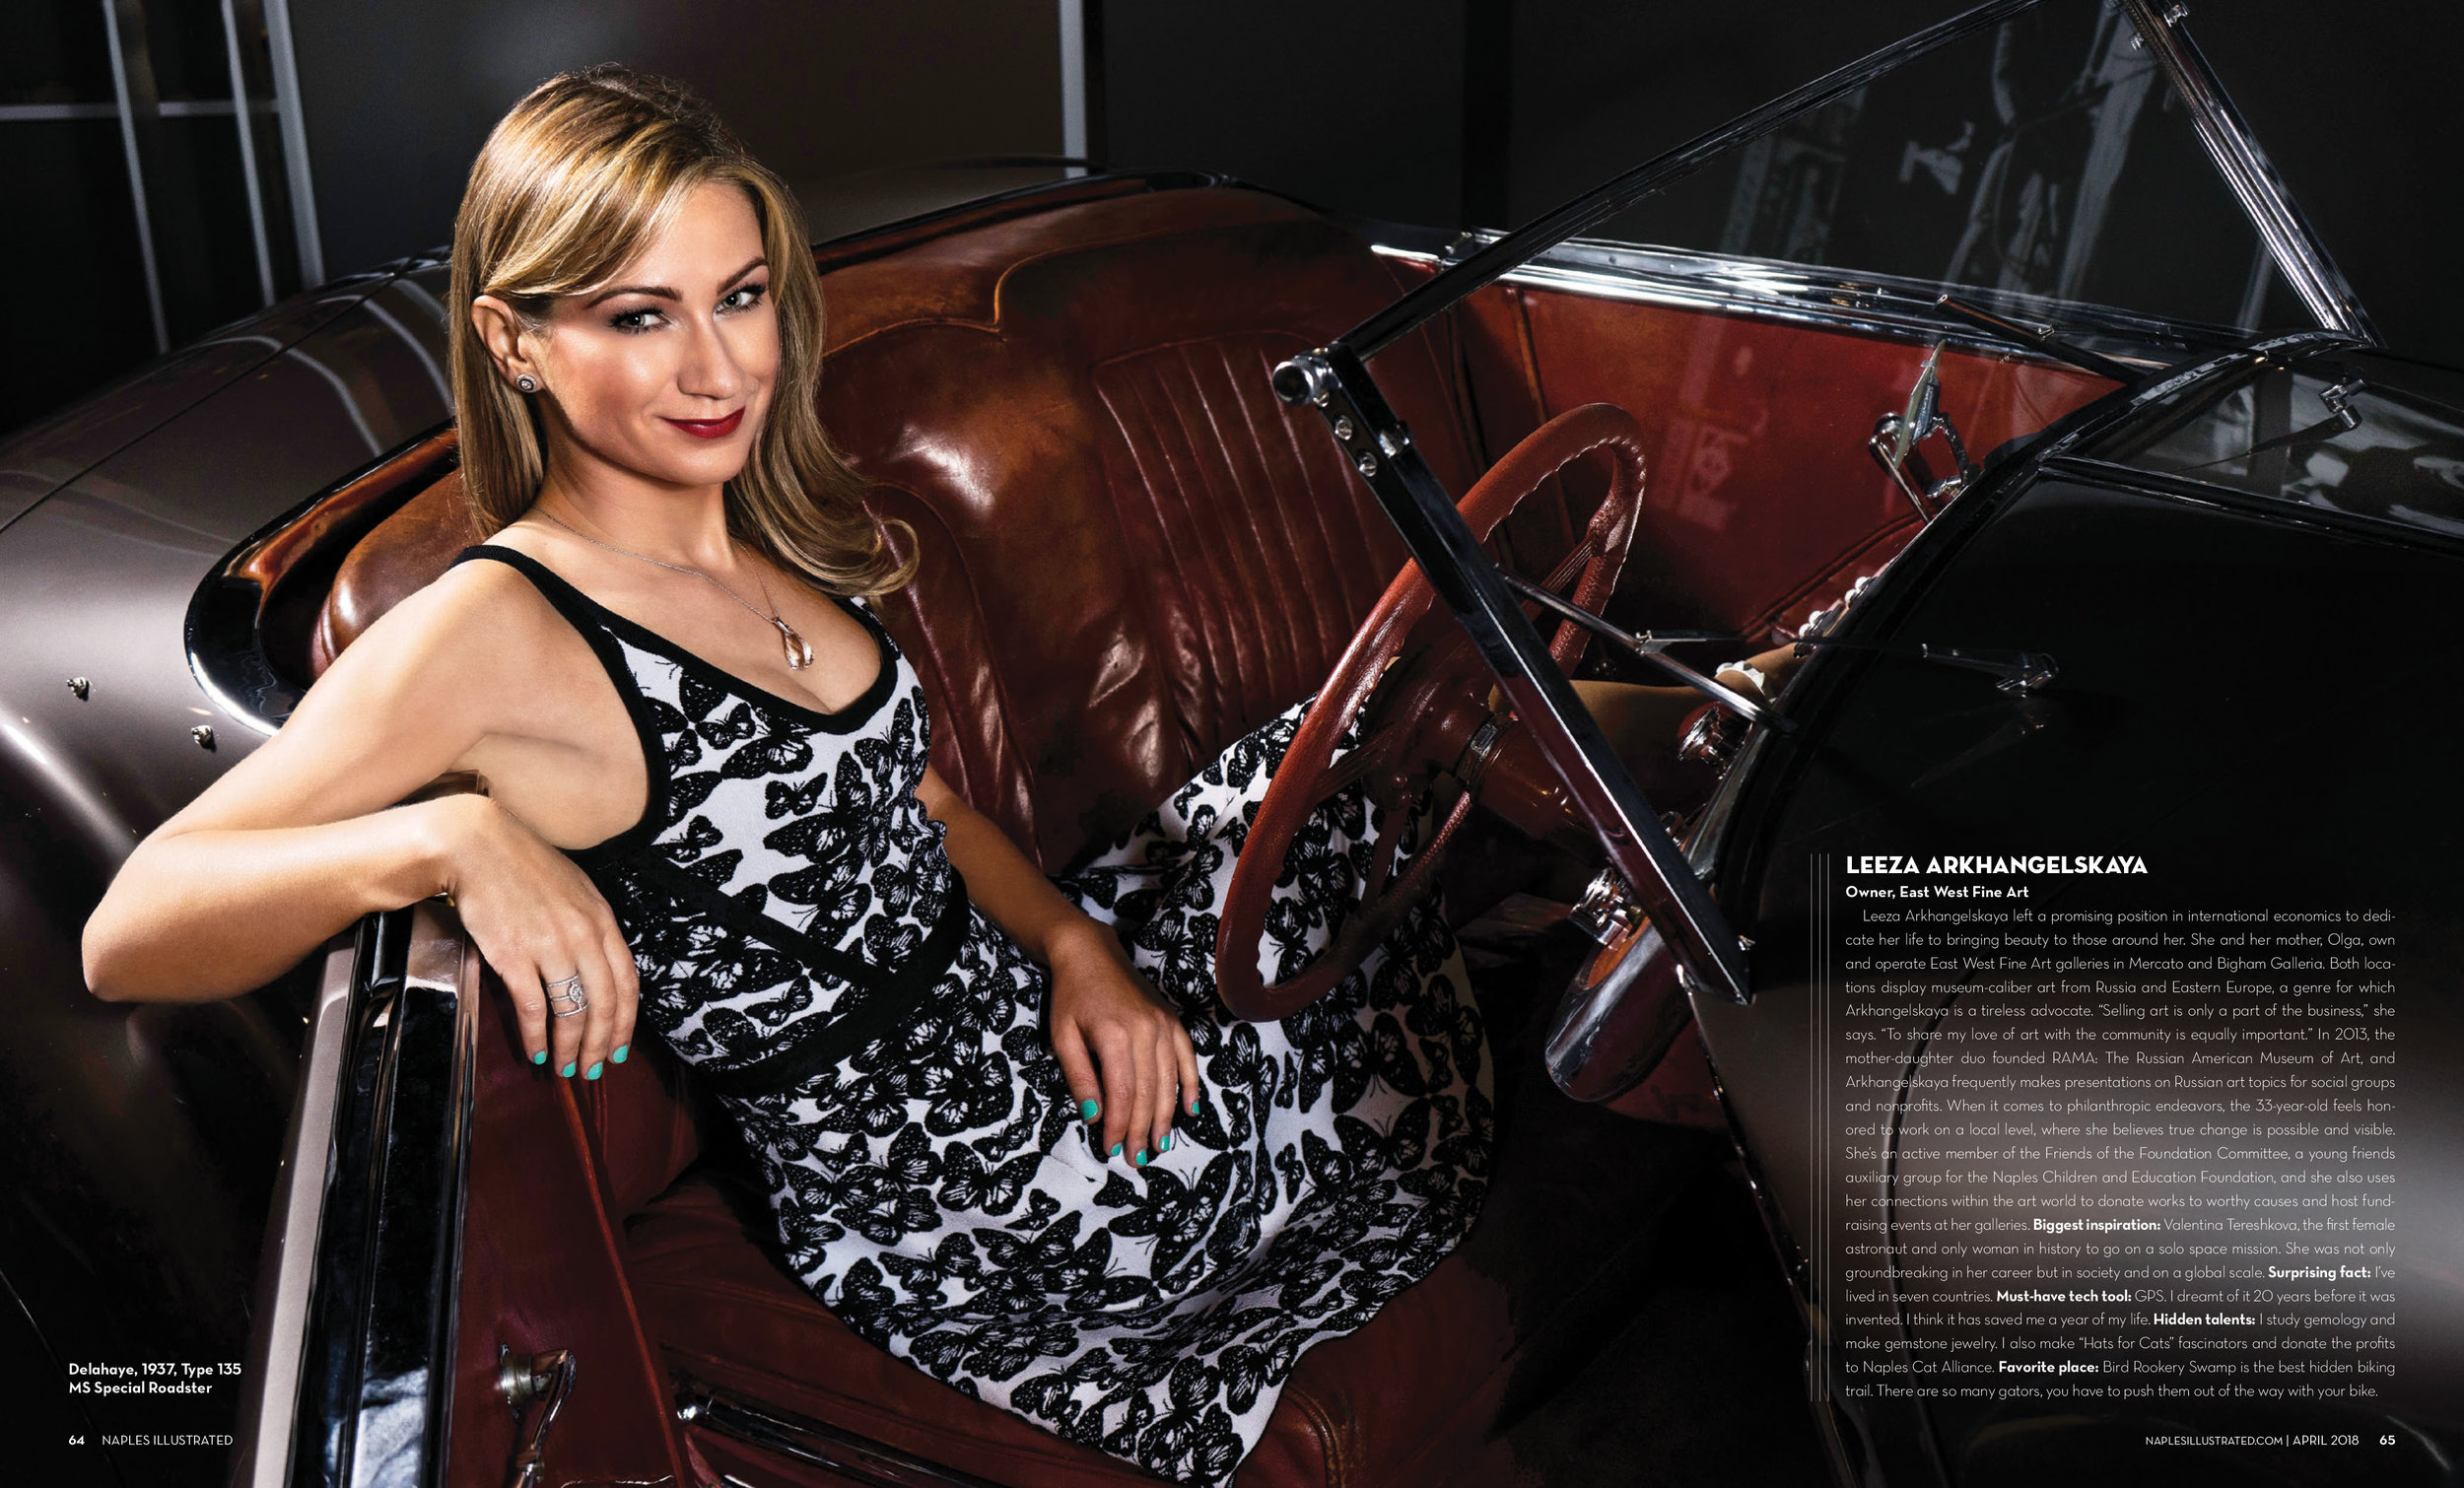 Leeza Arkhangelskaya, Owner of East West Fine Art in a Delahaye, 1937, Type 135 MS Special Roaster shot at The Rev's Institute in Naples, Florida March 2018 Issue of Naples Illustrated Magazine